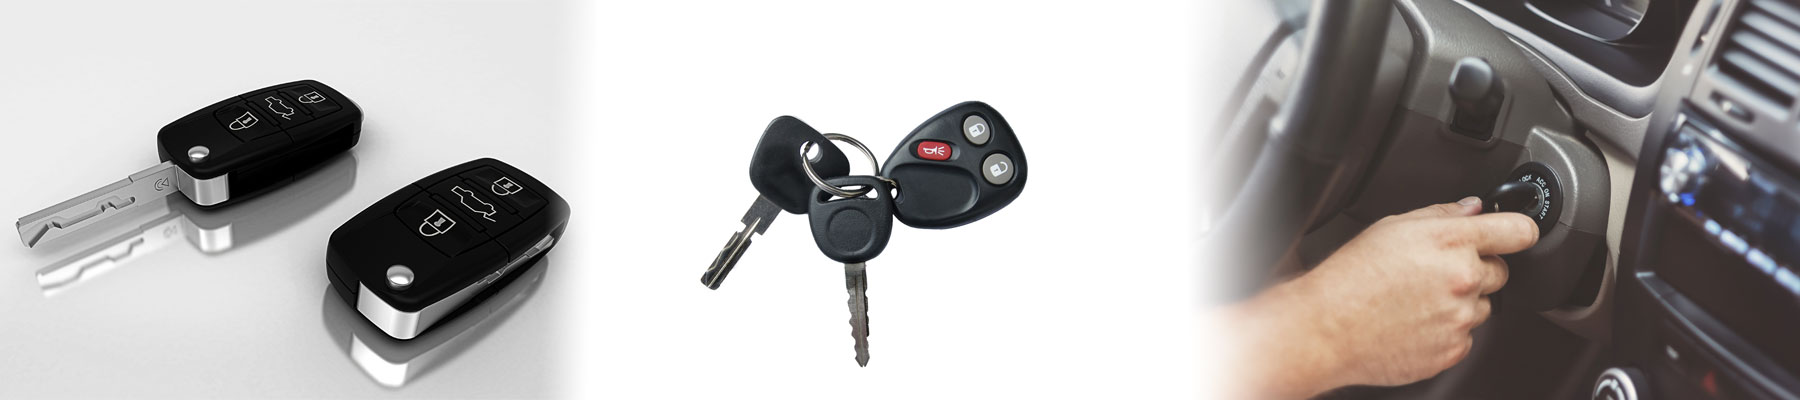 Car Key Replacement Houston Texas Sky Lock And Doors Service